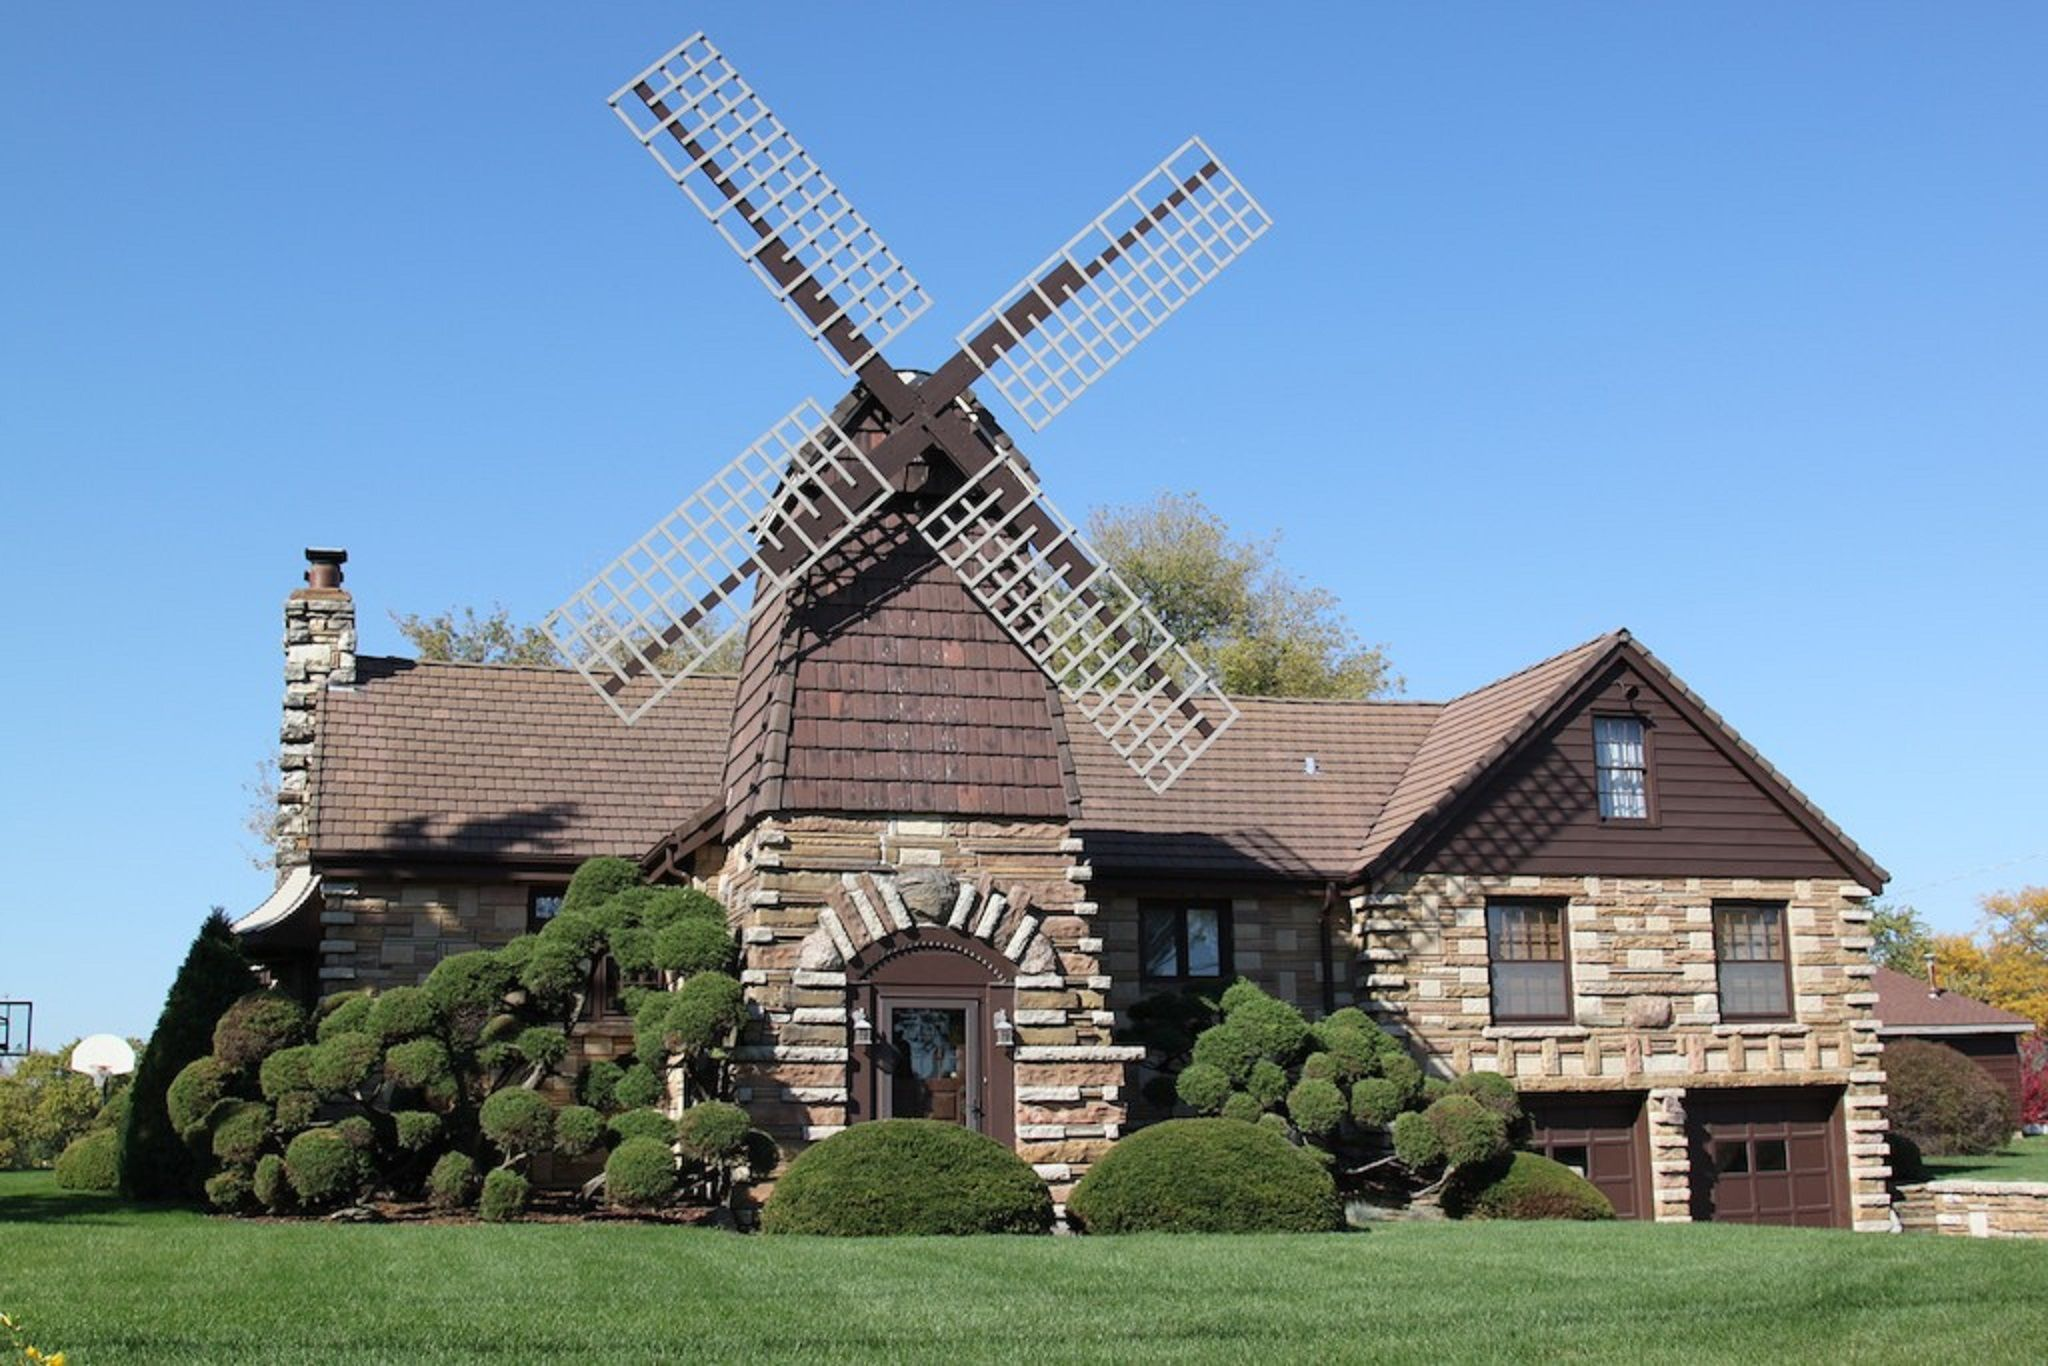 Windmill House Wheaton Illinois Built In 1942 From Materials Salvaged A